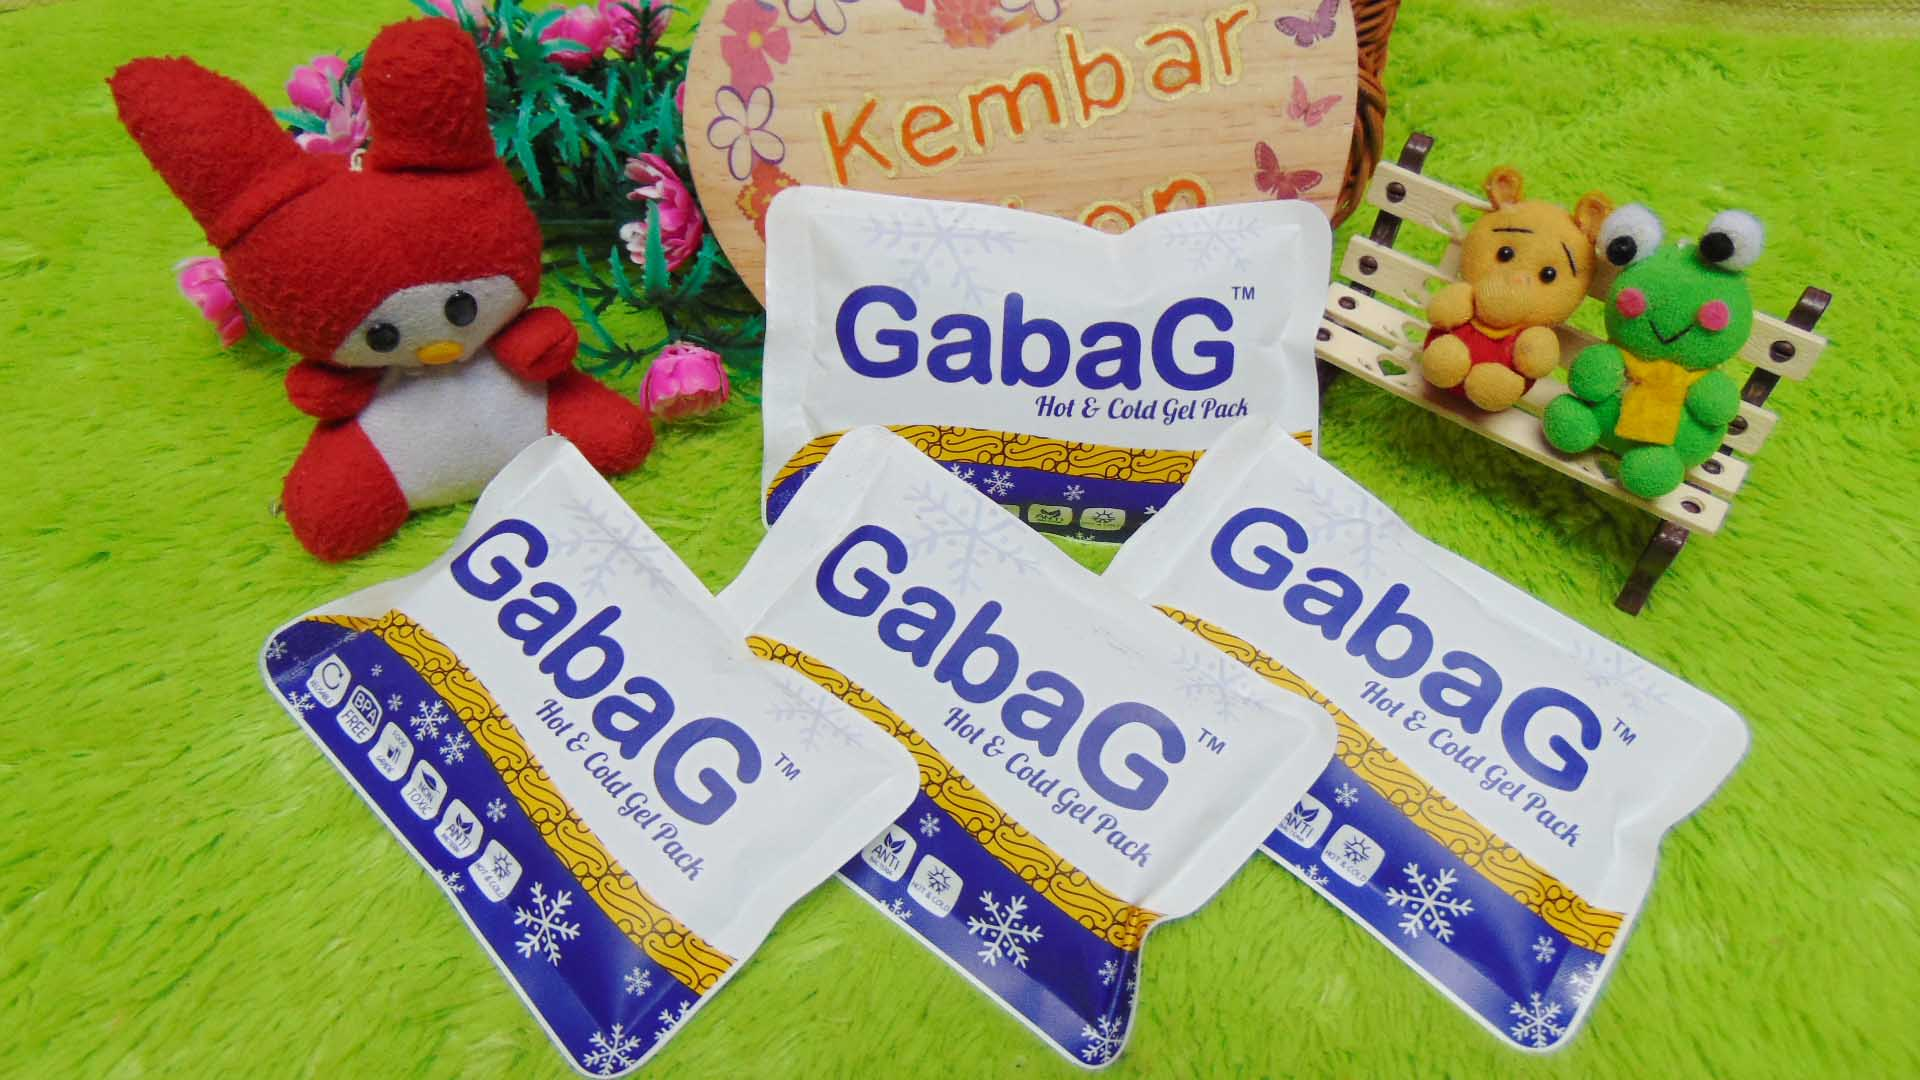 ice gel ice pack gabag 200gr alat kompres serbaguna (1)